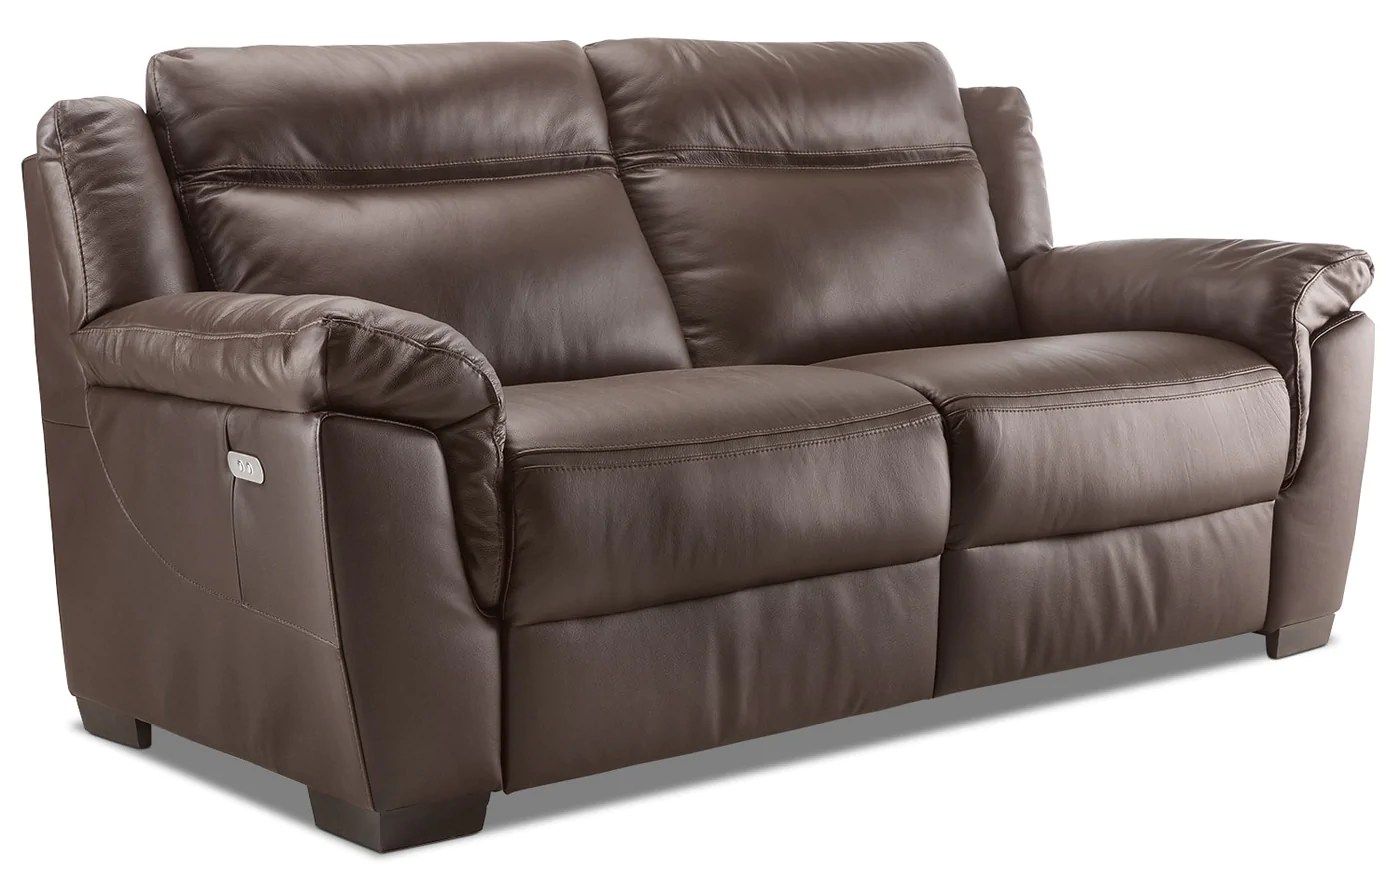 Charmant Natuzzi Editions Lemans Genuine Leather Power Reclining Sofa